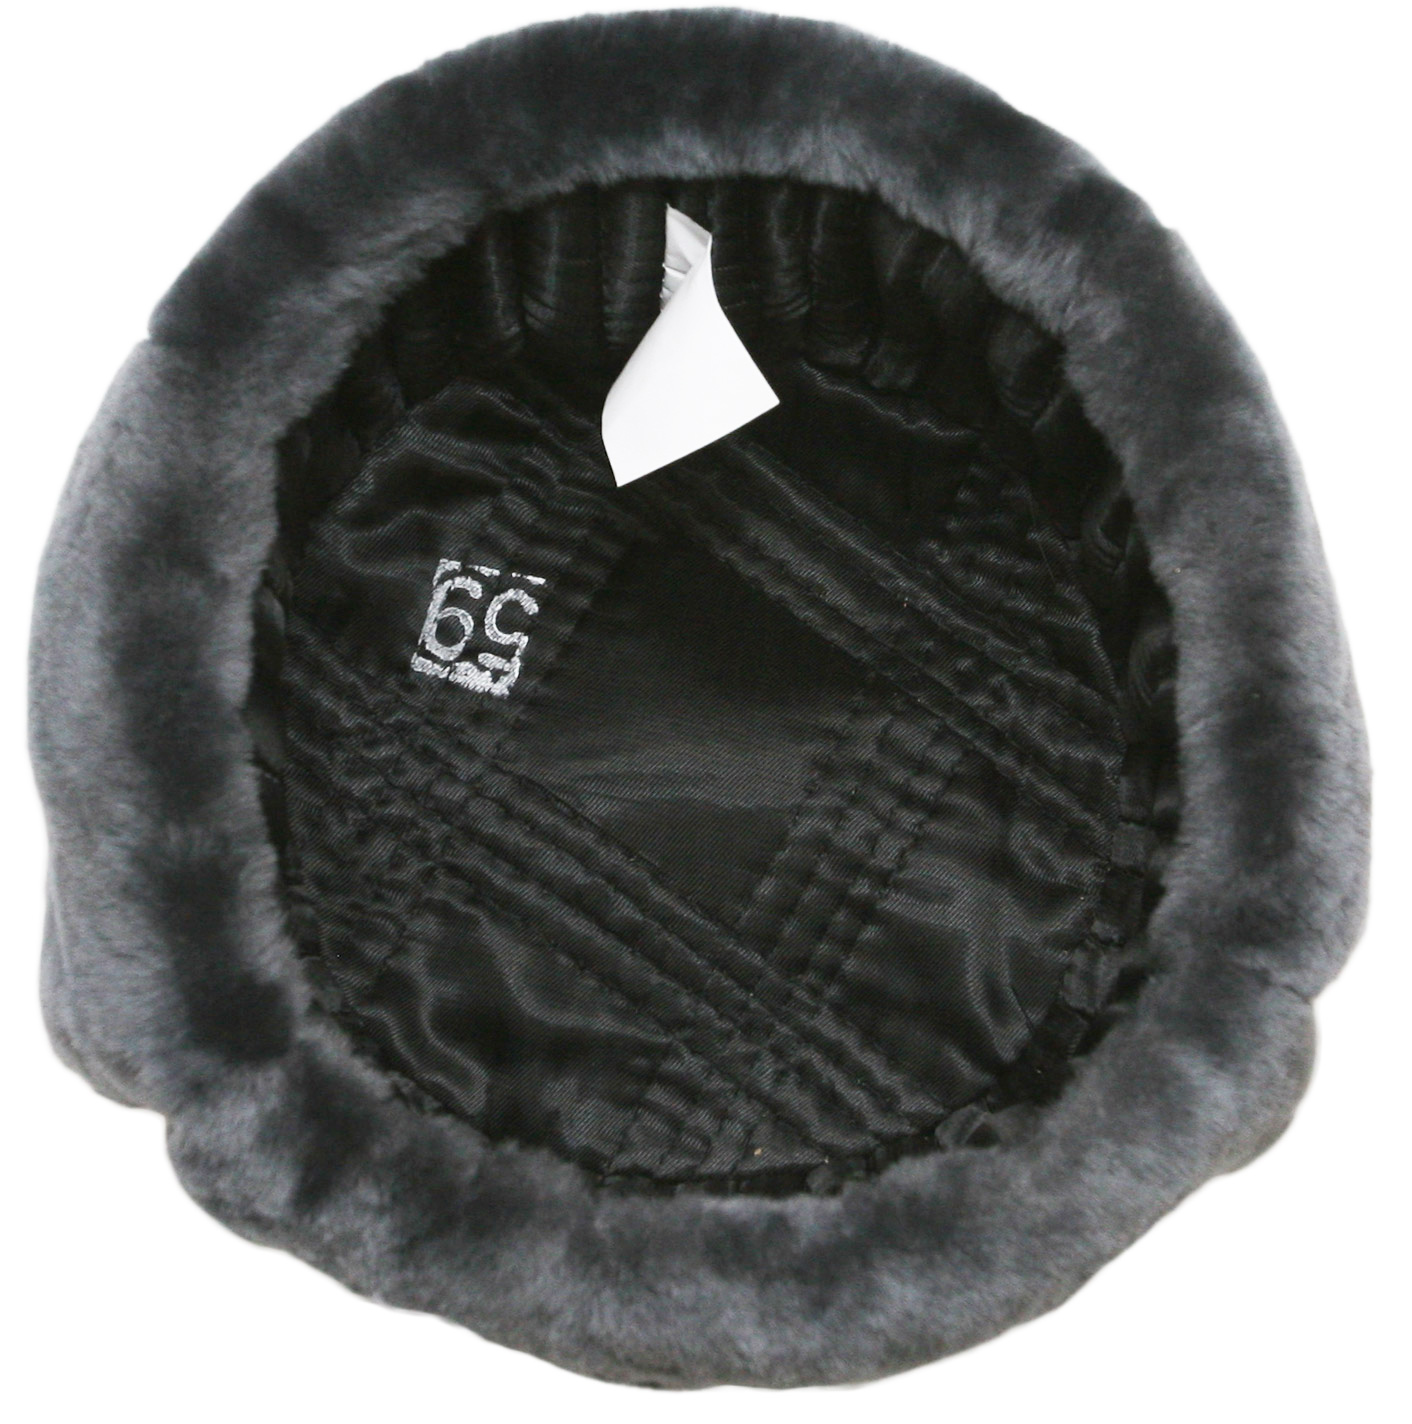 126e02b813fb5 This hat comes with a choice of free insignia. Please indicate an insignia  number at checkout. For your convenience an insignia will come unattached  to the ...